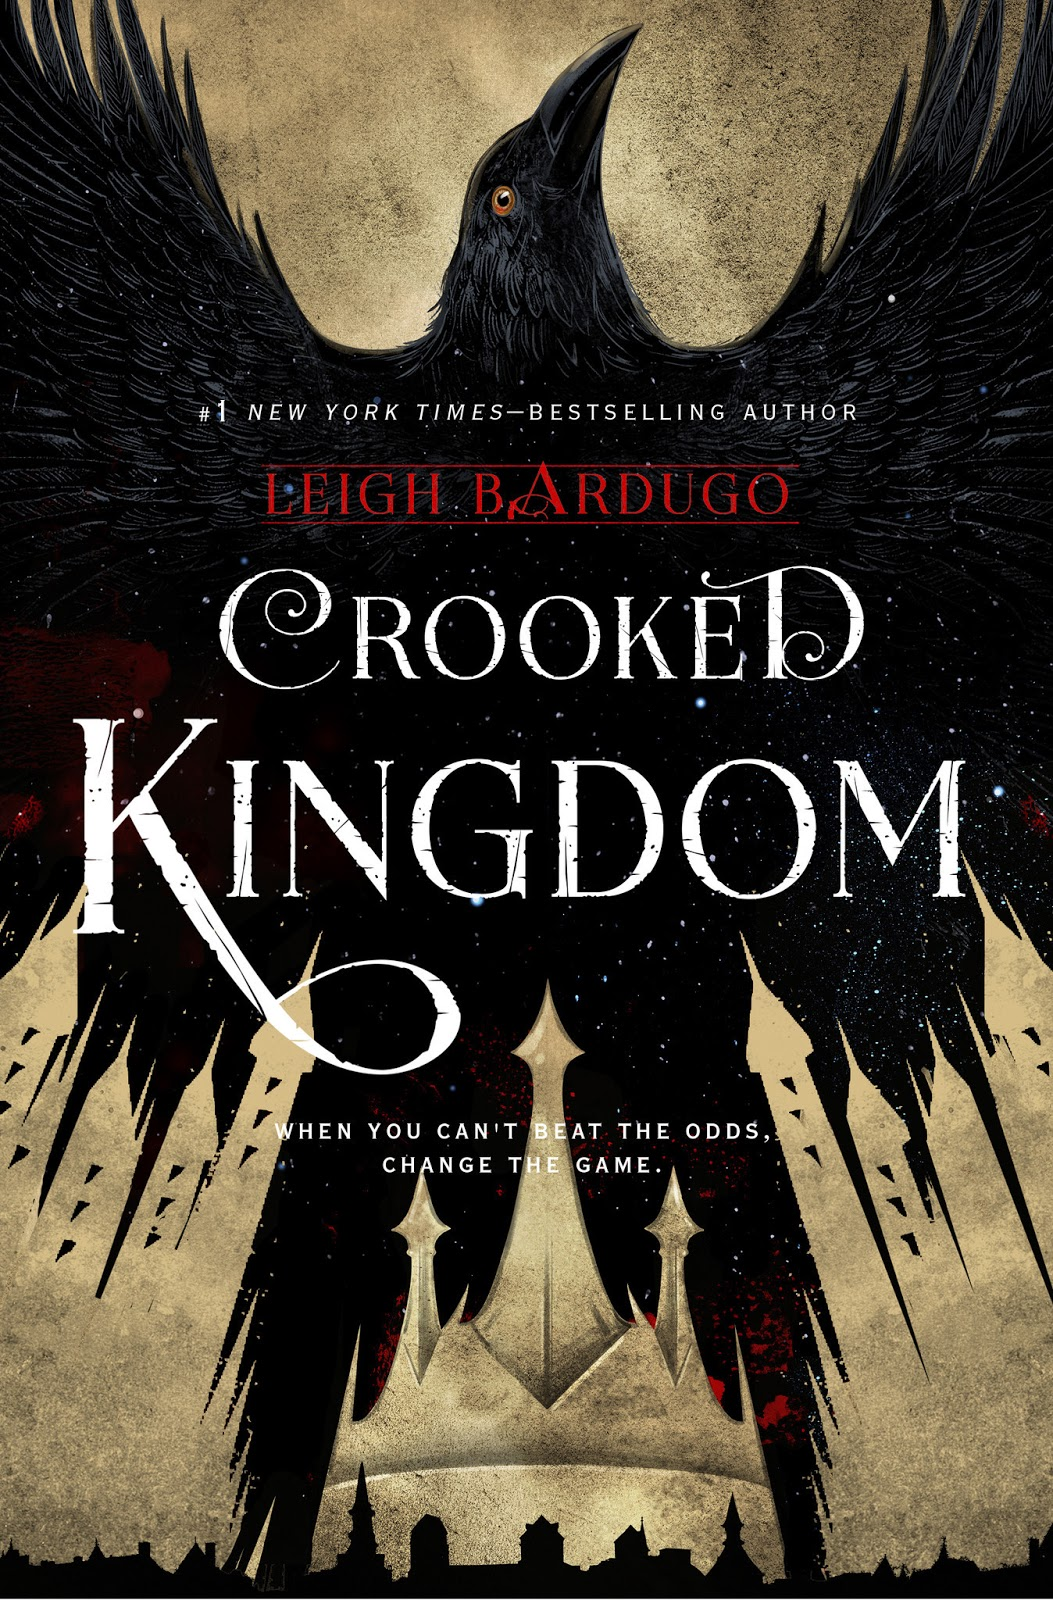 Crooked Kingdom Leigh Bardugo Six Of Crows cover